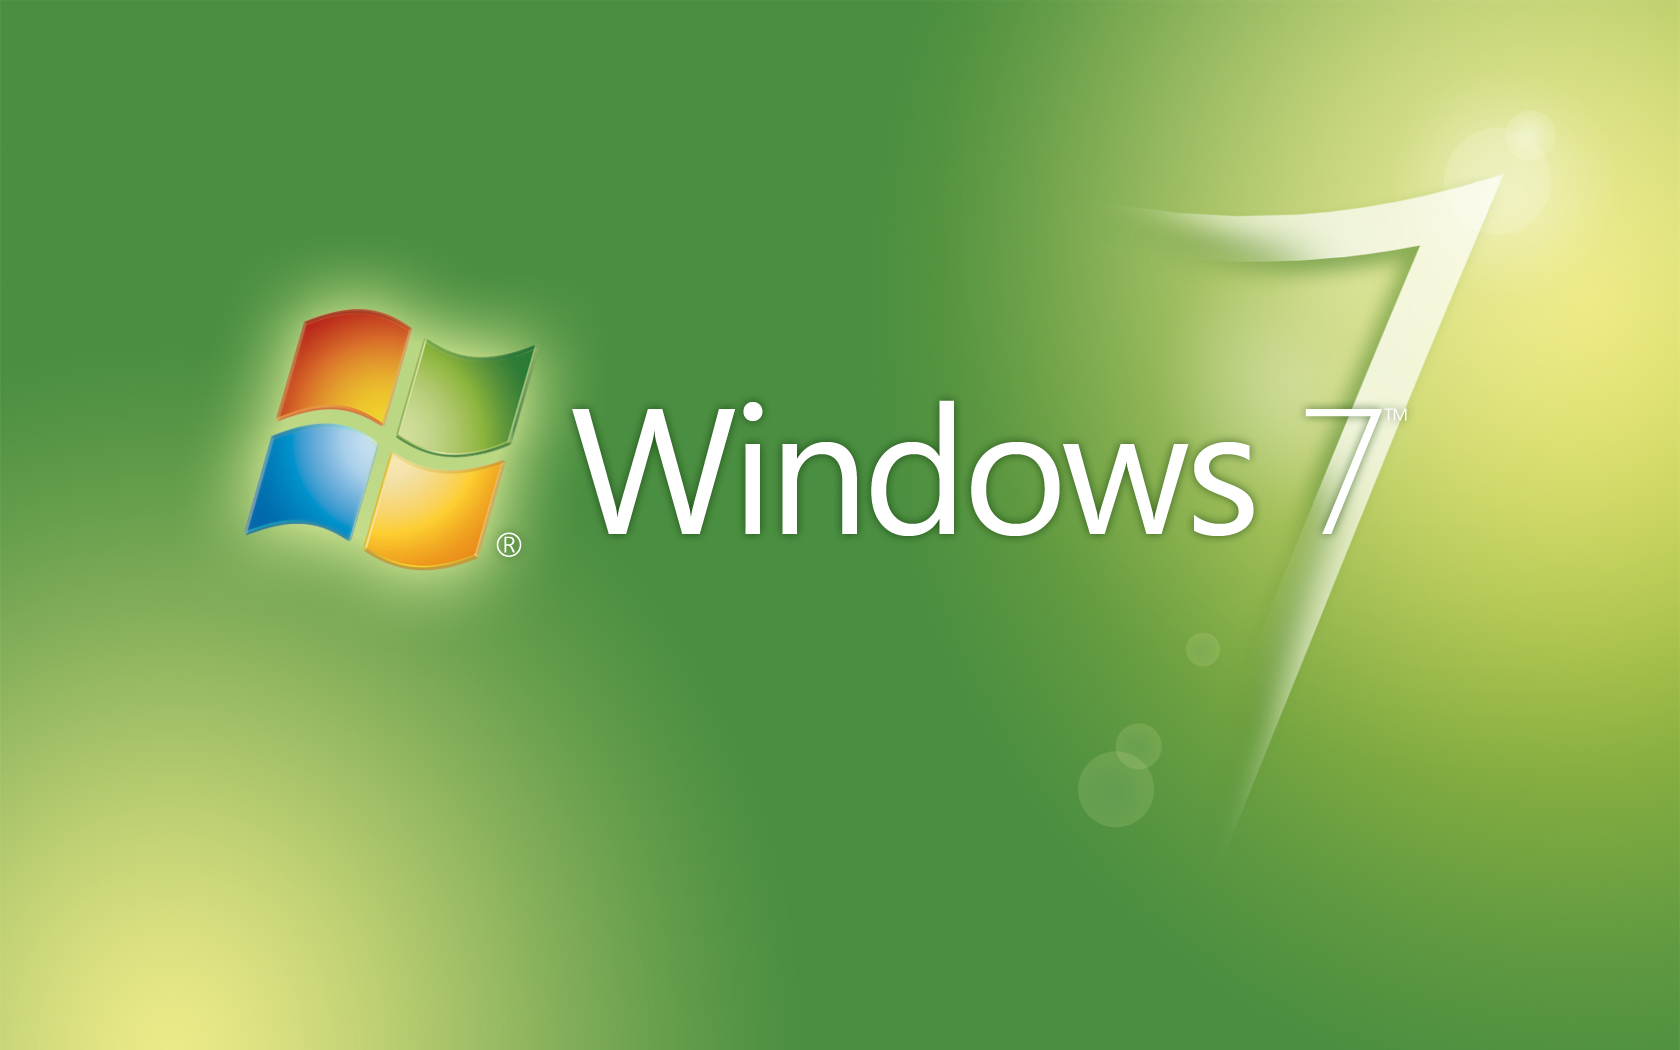 Greenish Windows 7 Logo Wallpaper